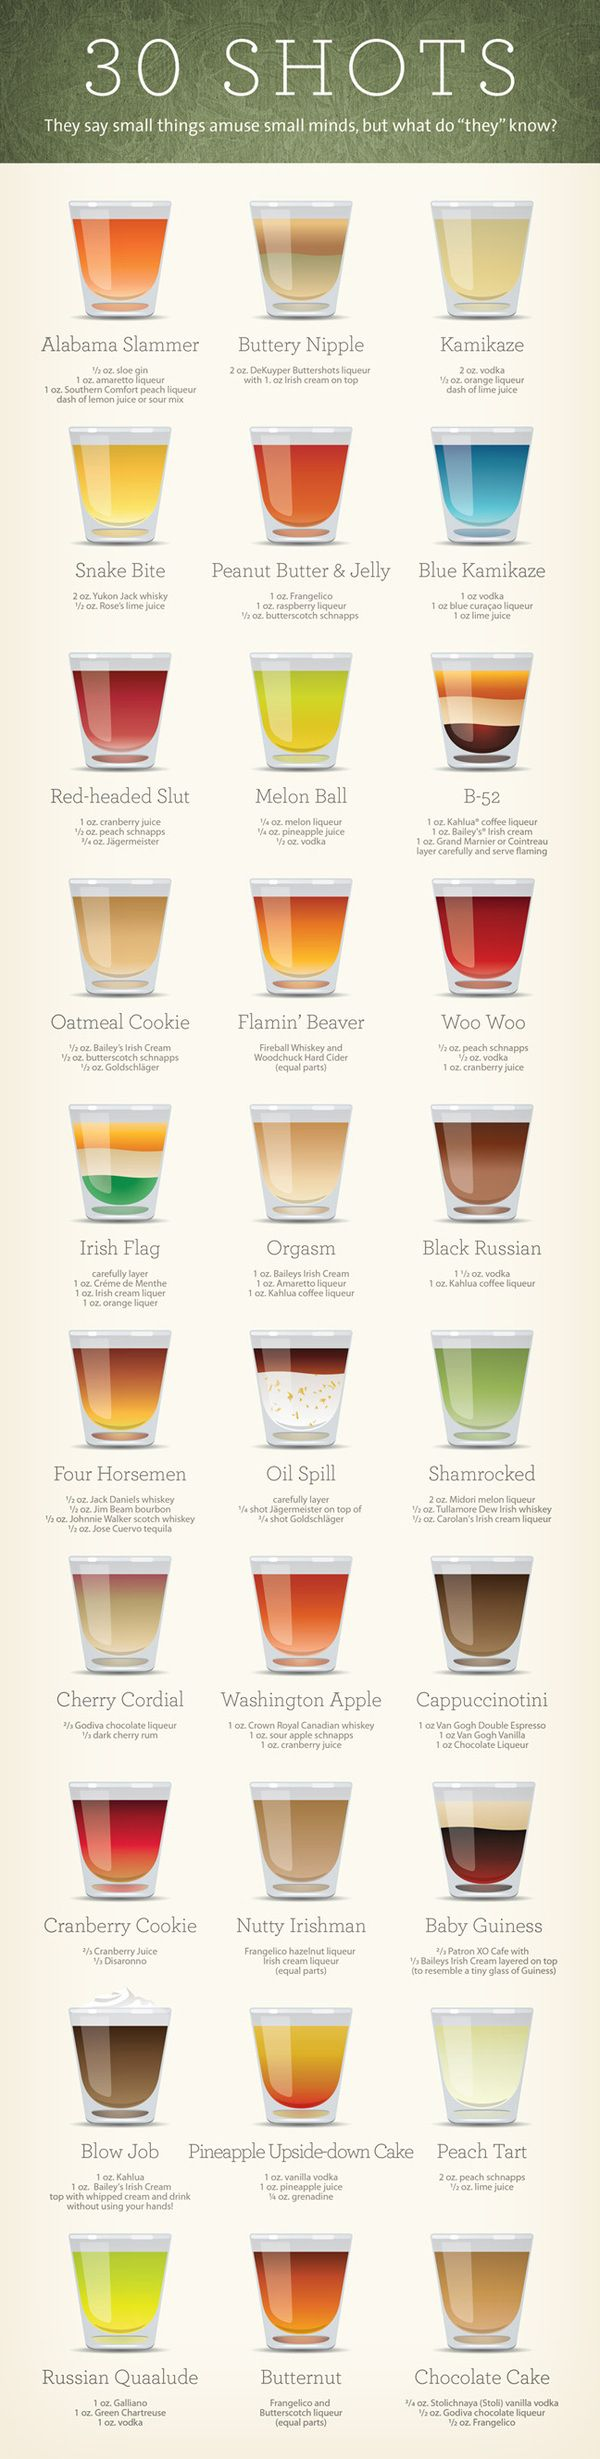 30 Shots Recipes Infographic {30 Yummy Shooter Recipes}